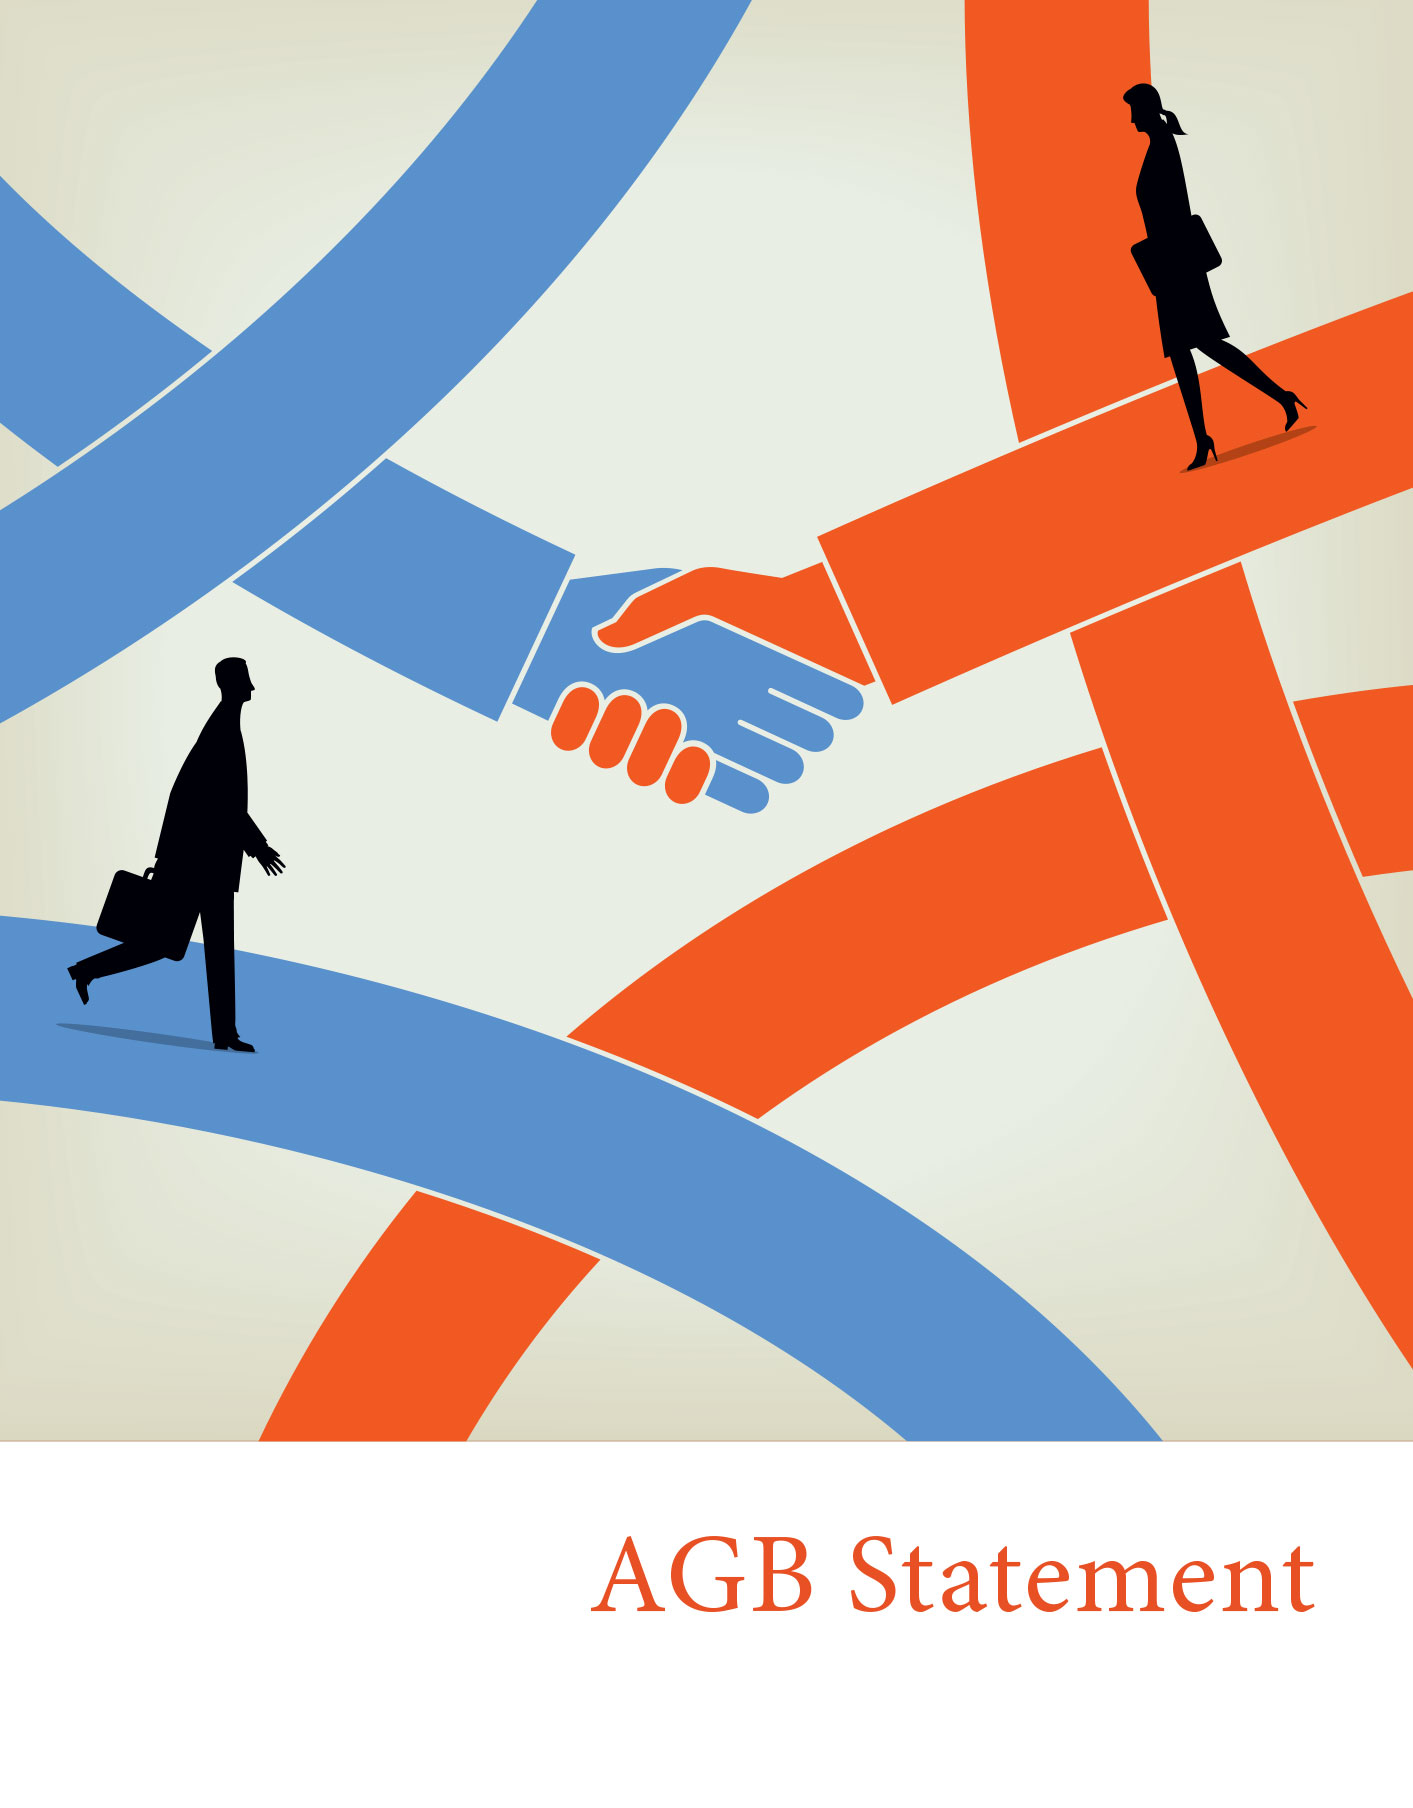 AGB-CHEA Joint Advisory Statement on Accreditation & Governing Boards